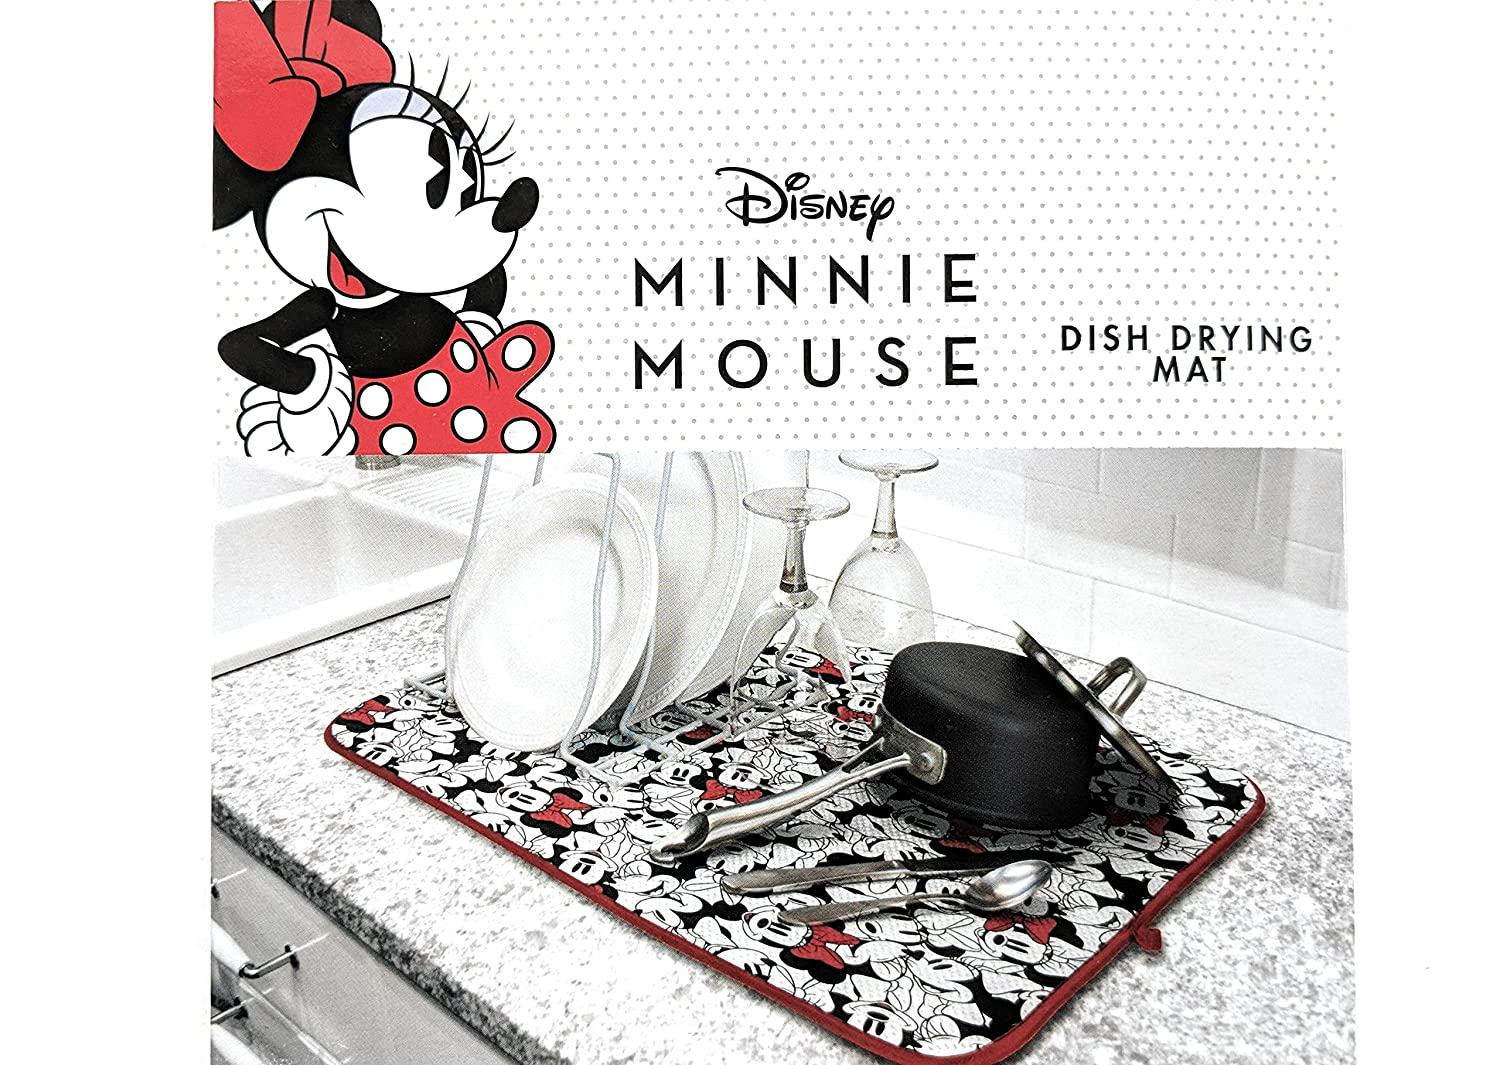 Minnie Mouse Dish Drying Mat, 16 x 18 inches